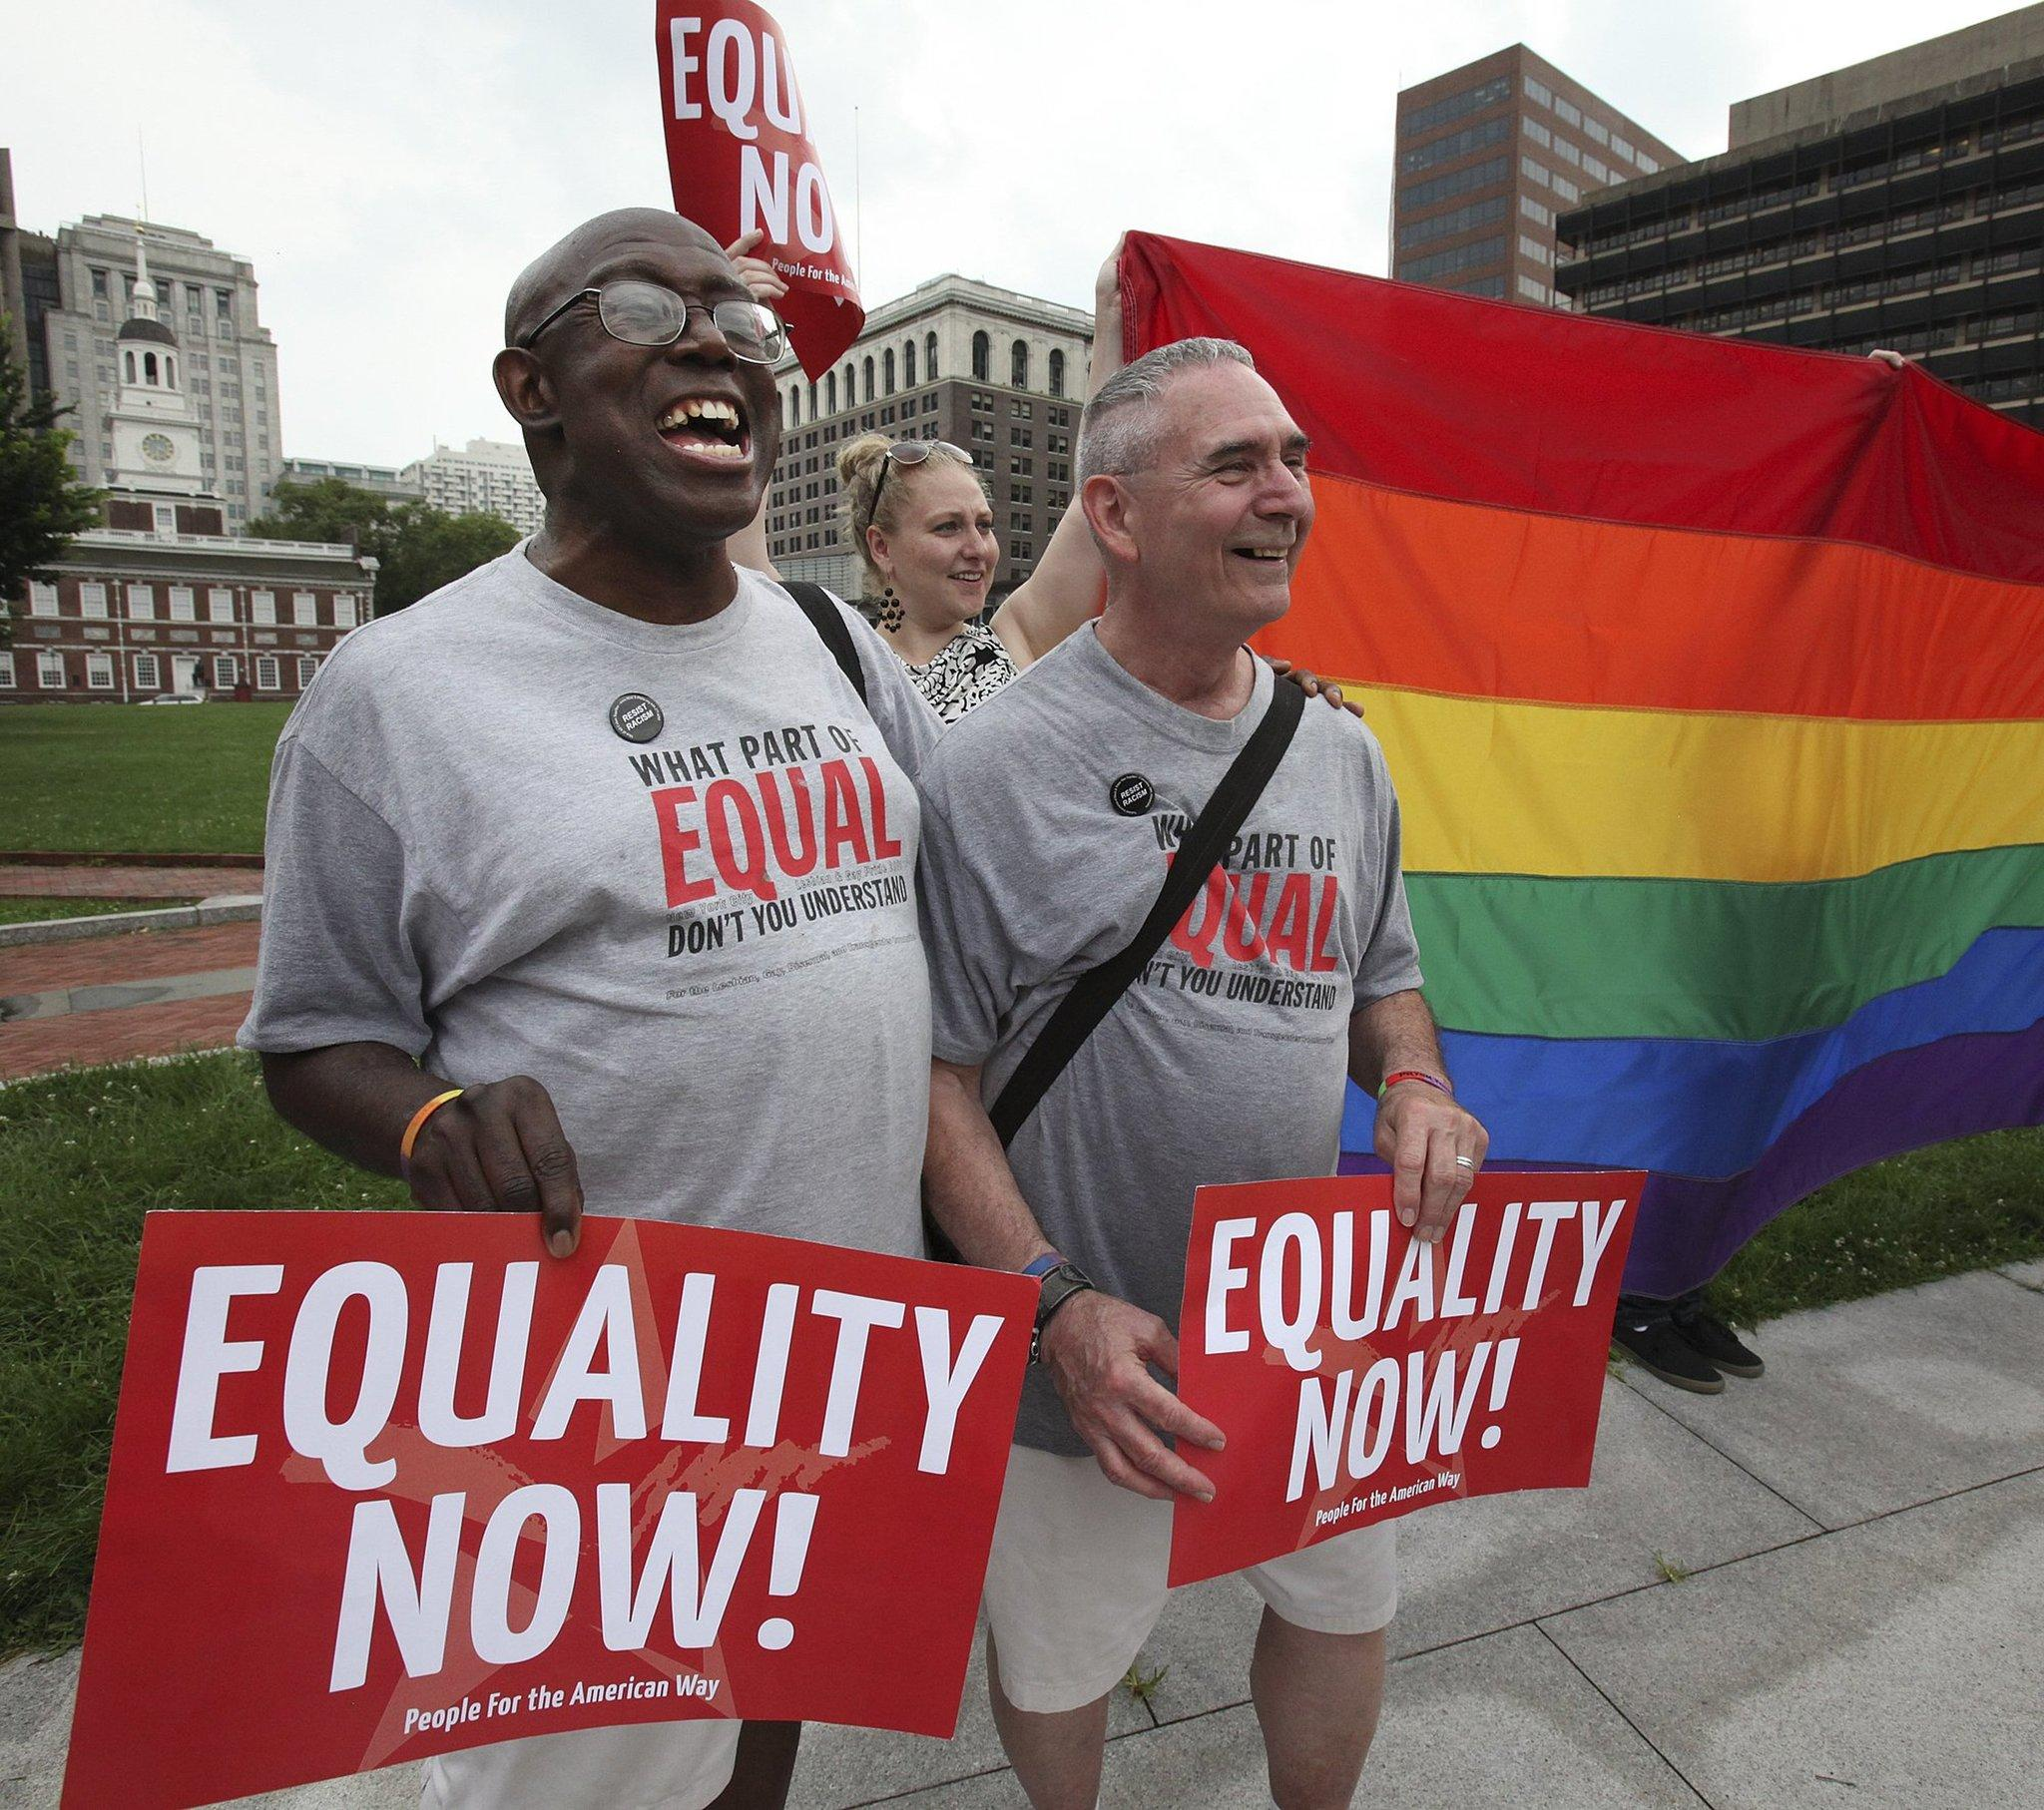 Stevie Martin-Chester, left, with his husband Arthur Martin-Chester, attend a rally in Philadelphia in support of gay marriage.